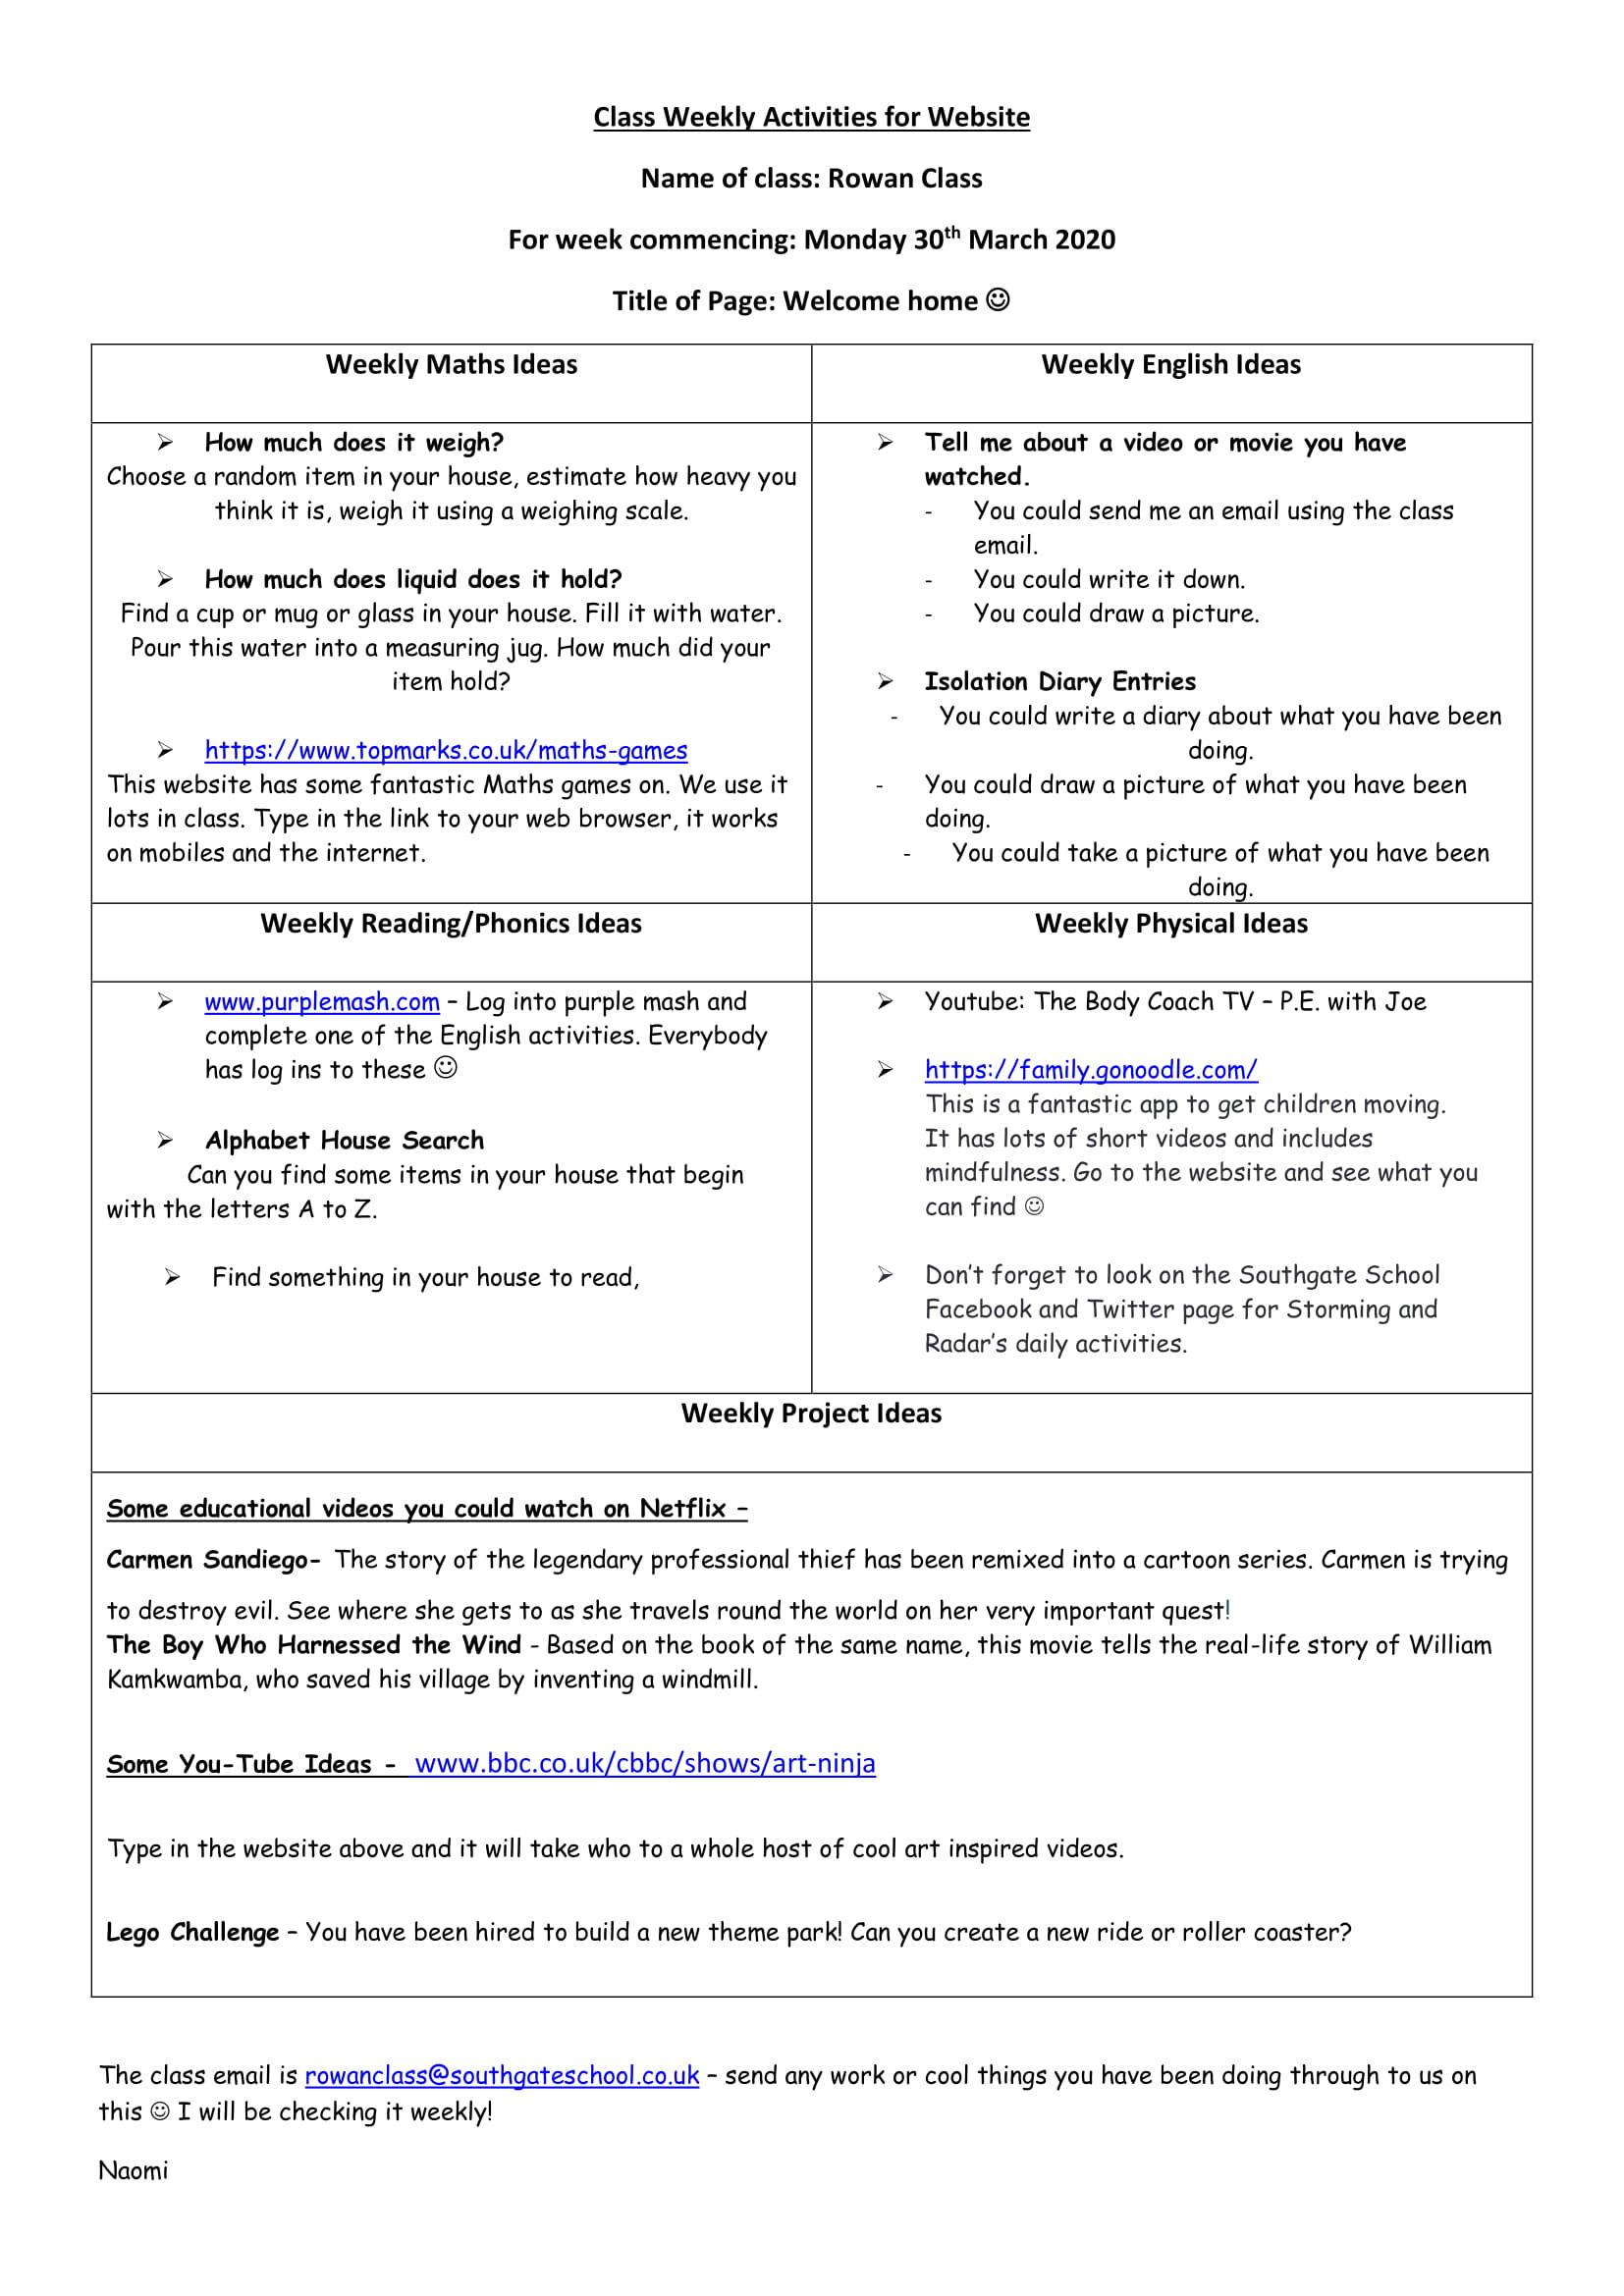 Rowan Class Weekly Activities for 30th March 2020-1